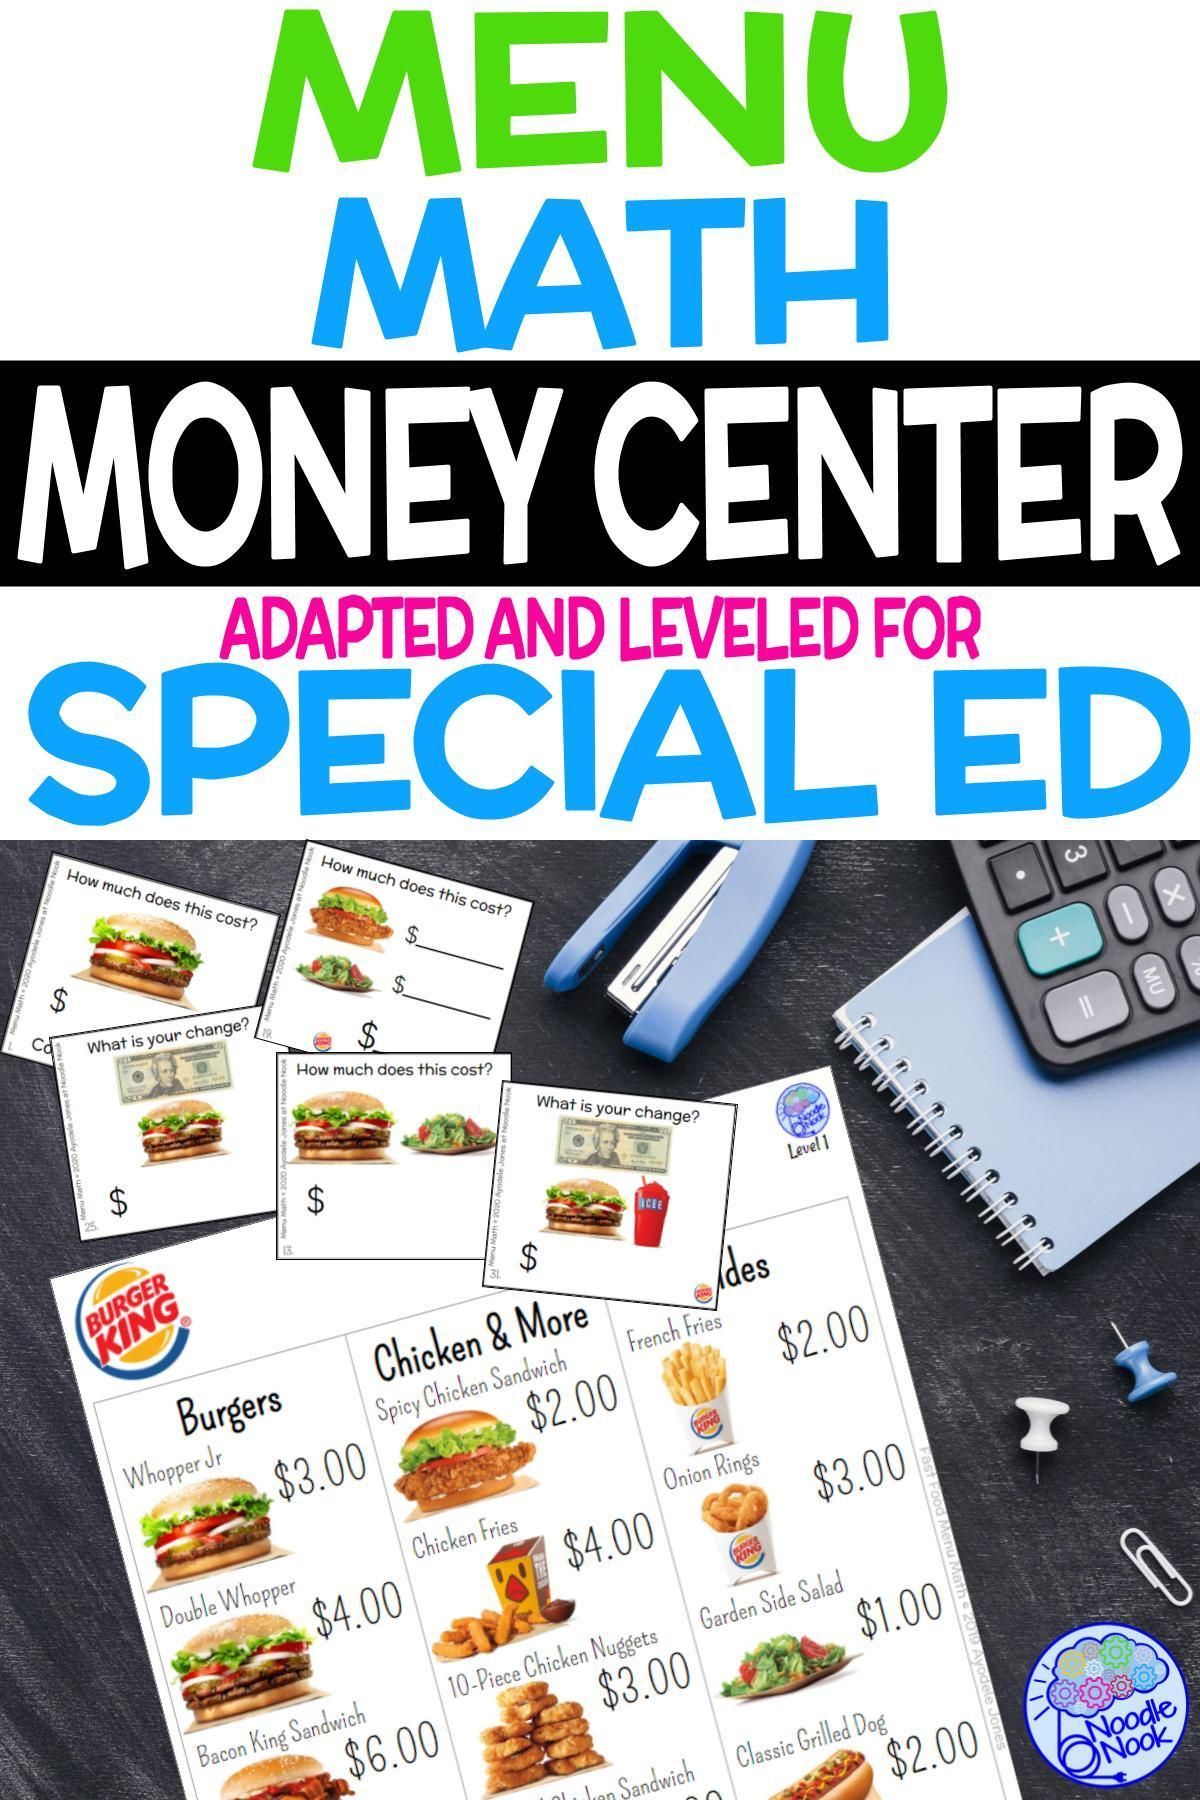 Fast food menu math burger king for special education